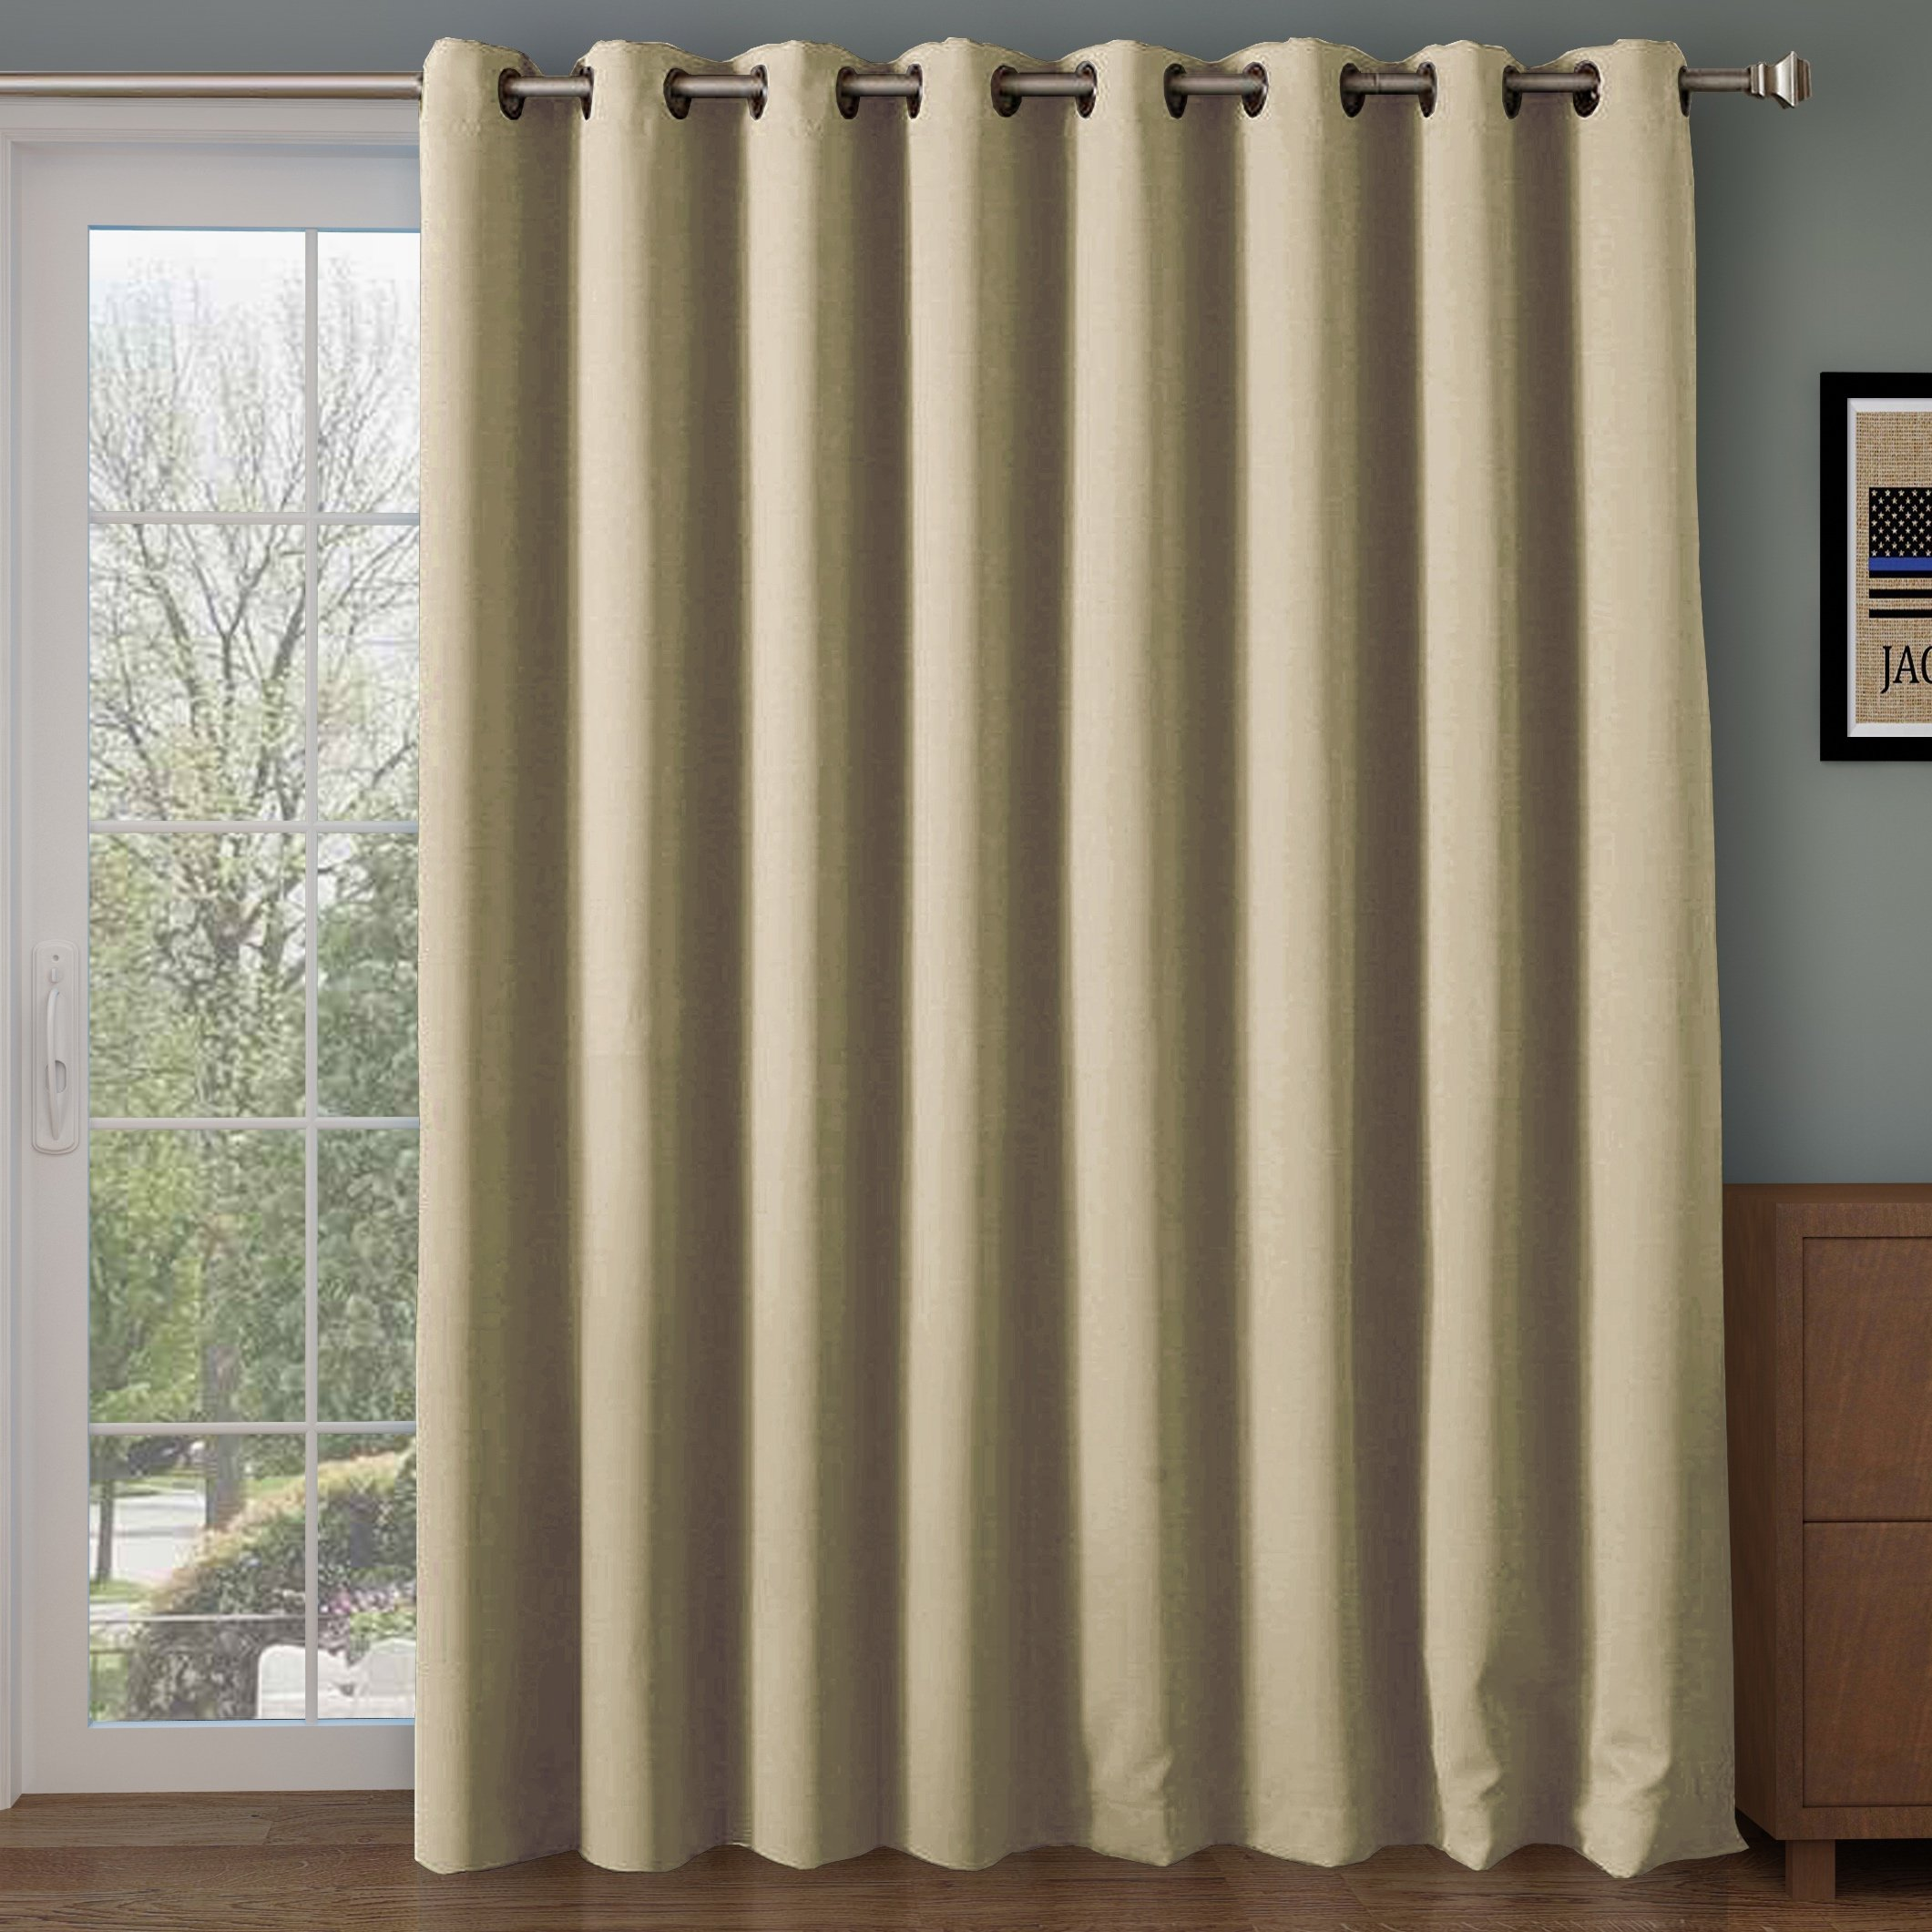 RHF Wide Thermal Blackout Patio Door Curtain Panel, Sliding Door Insulated Curtains,Thermal Curtains,Grommet Curtains, Extra Wide Curtains, Curtains for Sliding Glass Door:100W by 84L Inches-Beige by Rose Home Fashion